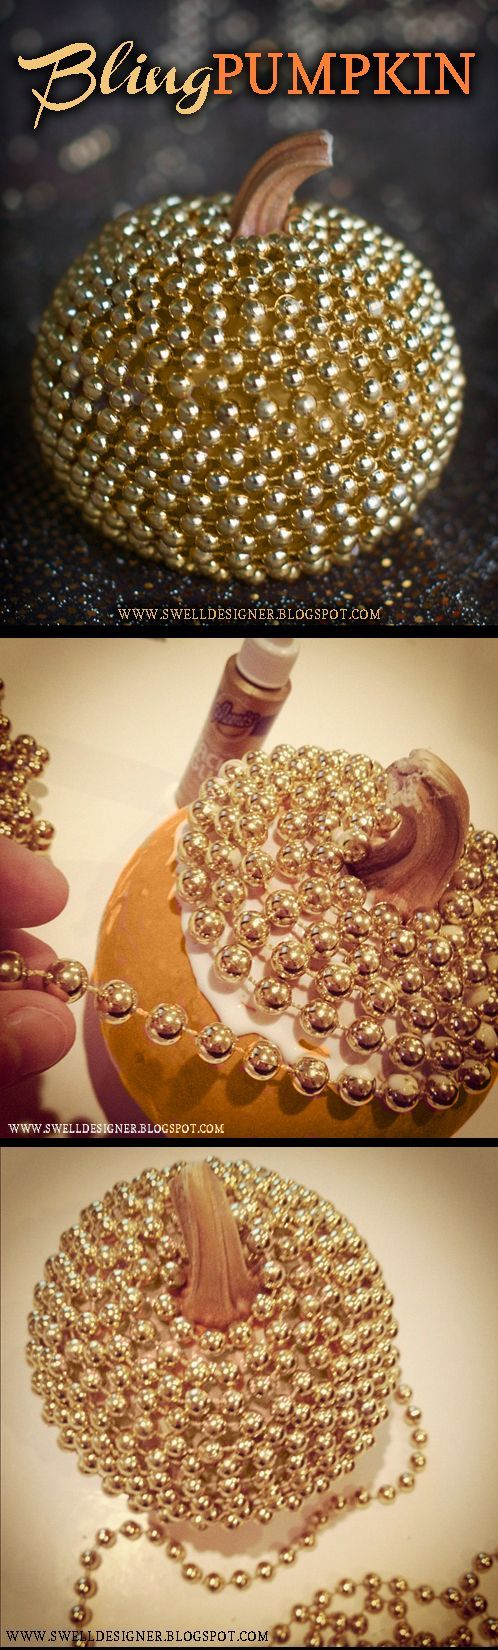 best crafty images on pinterest good ideas creative ideas and